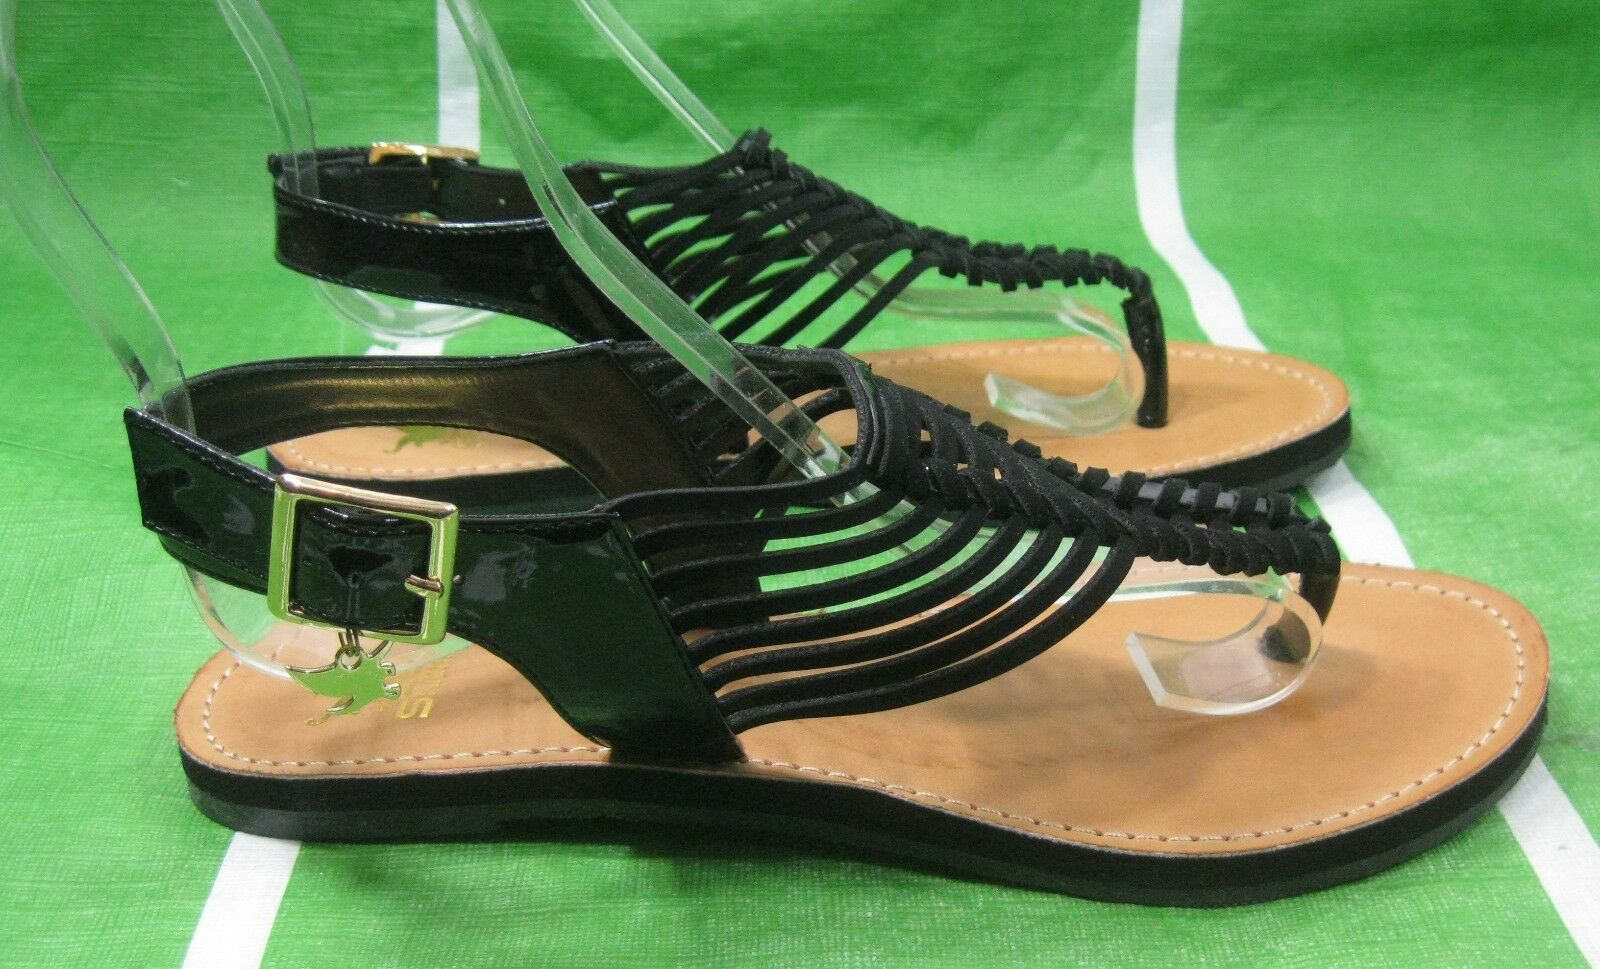 NEW LADIES Summer Black Slingback Size Womens Shoes Sexy Sandals Size Slingback 6 dcb054